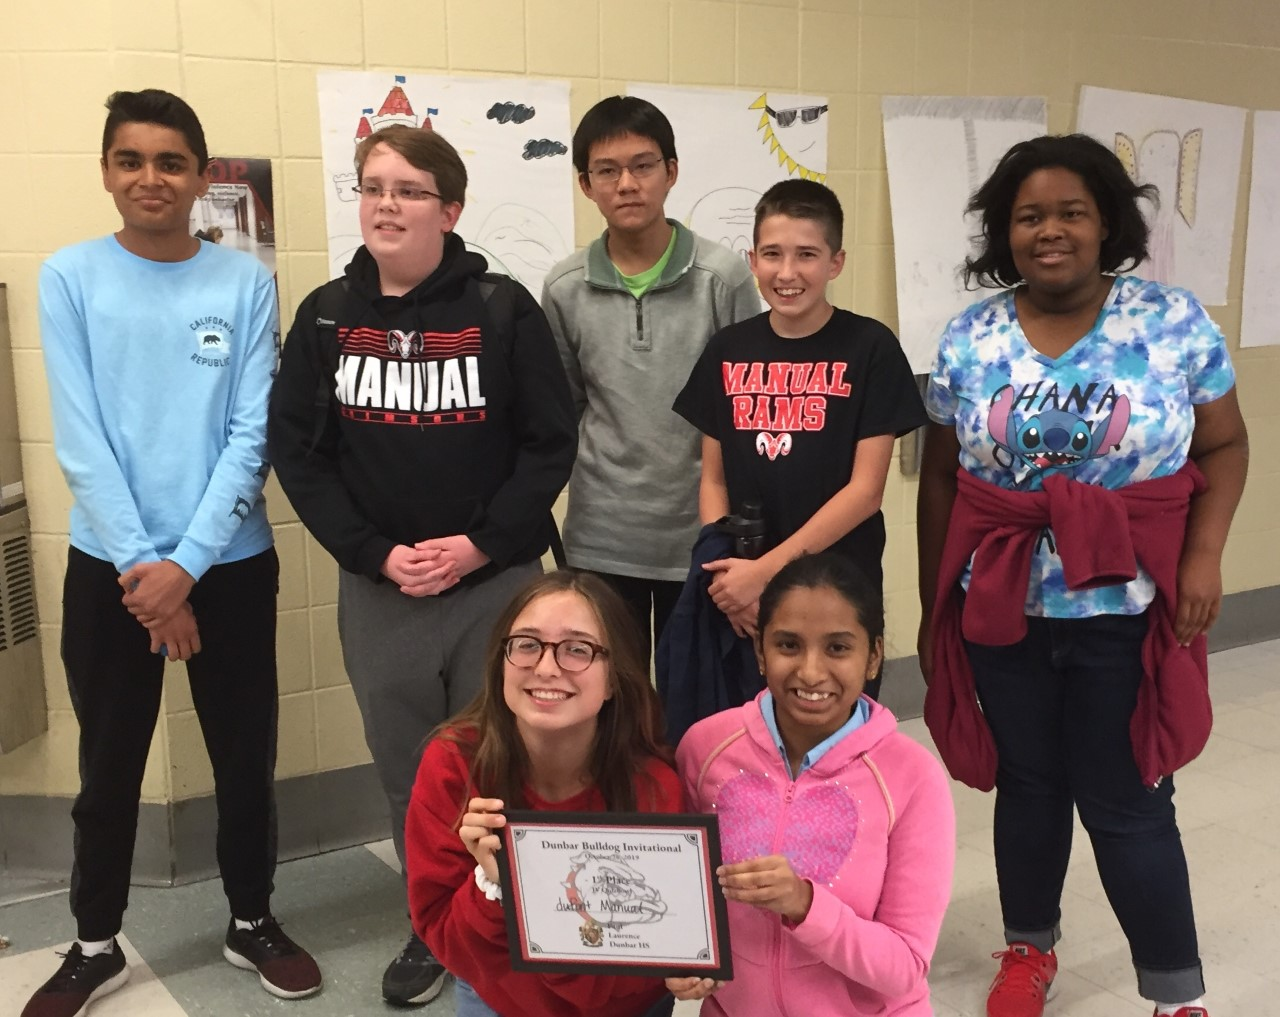 Manual's JV quiz bowl team, all MST 9th graders. Pictured: front row, left to right: Lauren Jones, Swetha Senthilnathan. Back row, left to right: Salil Kothari, Christopher Jones, Luke Mo, Dylan Kissling, Jovanna Okyere. Photo by Alexis Rich.